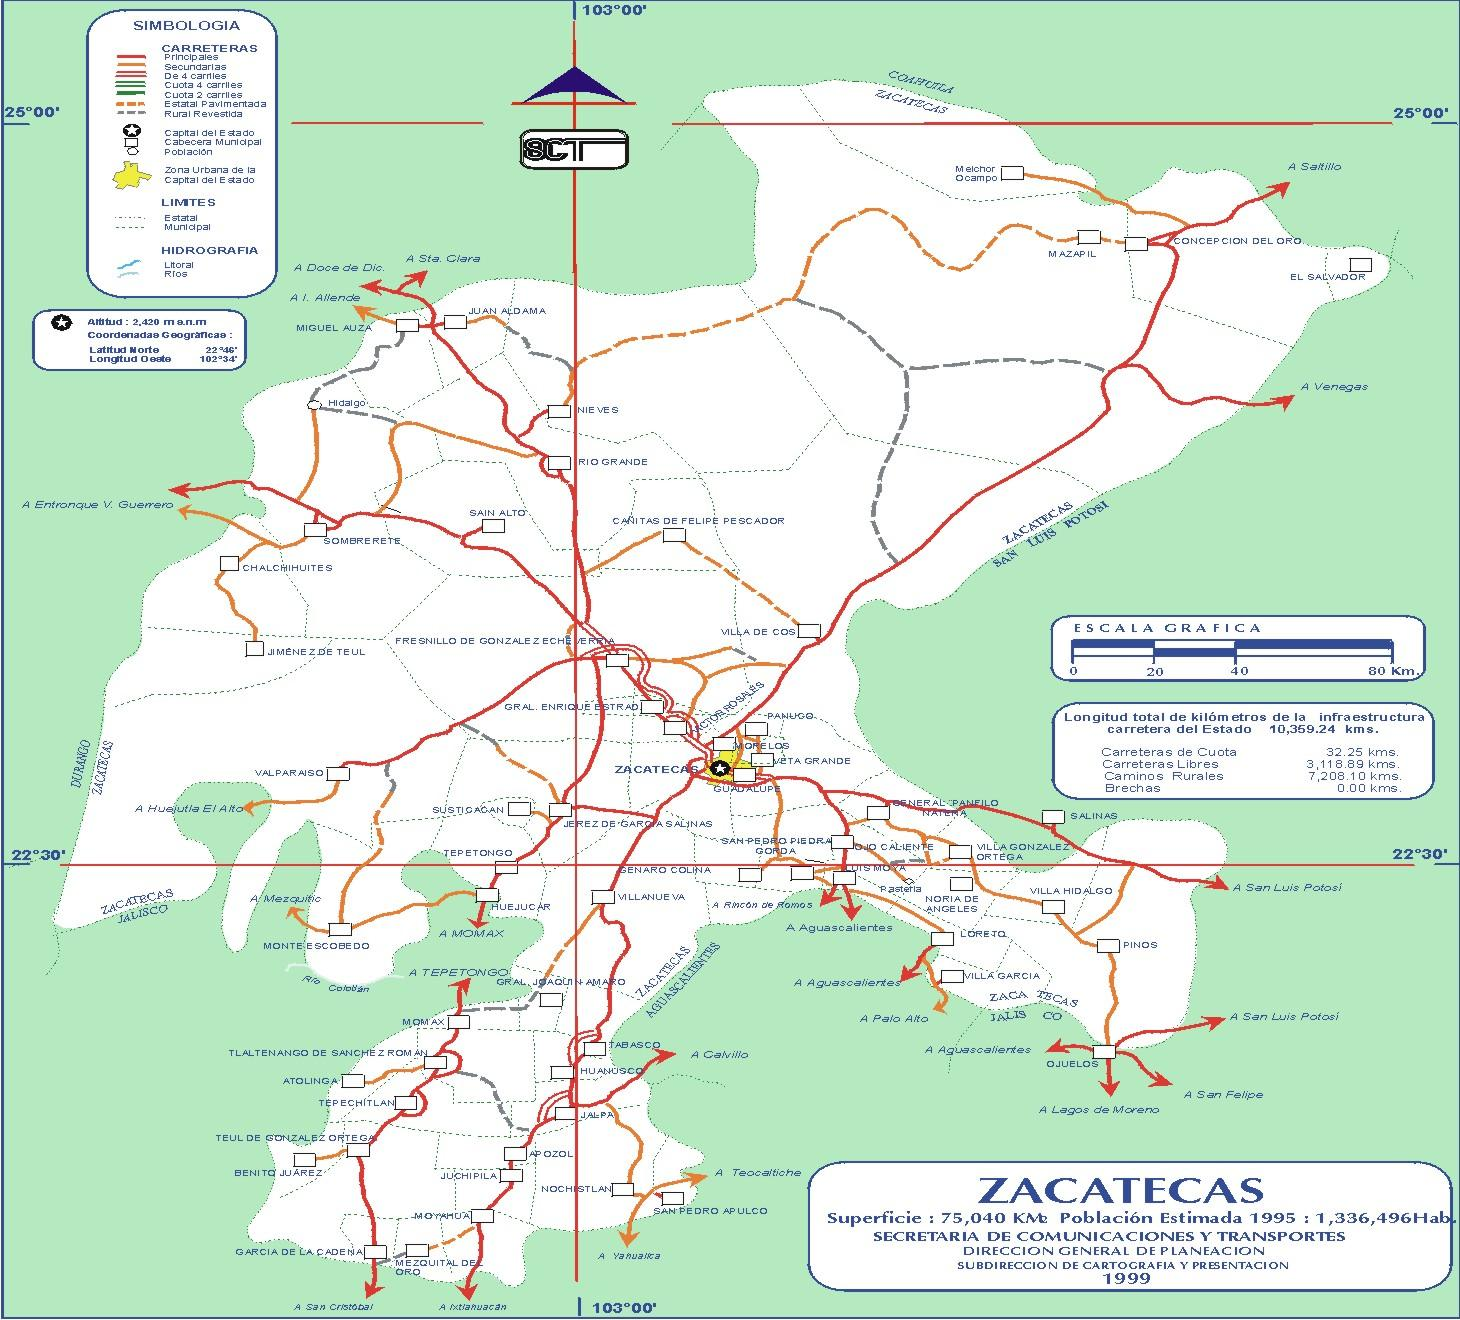 Map of Zacatecas (State), Mexico